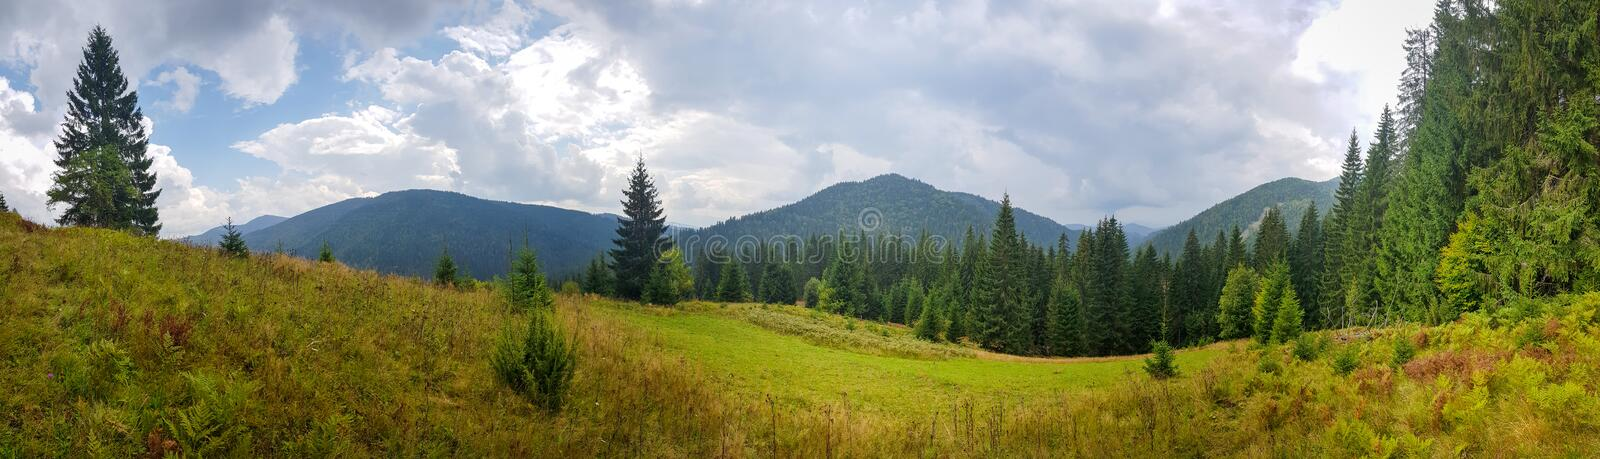 Beautiful natural landscape in green mountains and fields. Karpatu hills in Ukraine royalty free stock photography